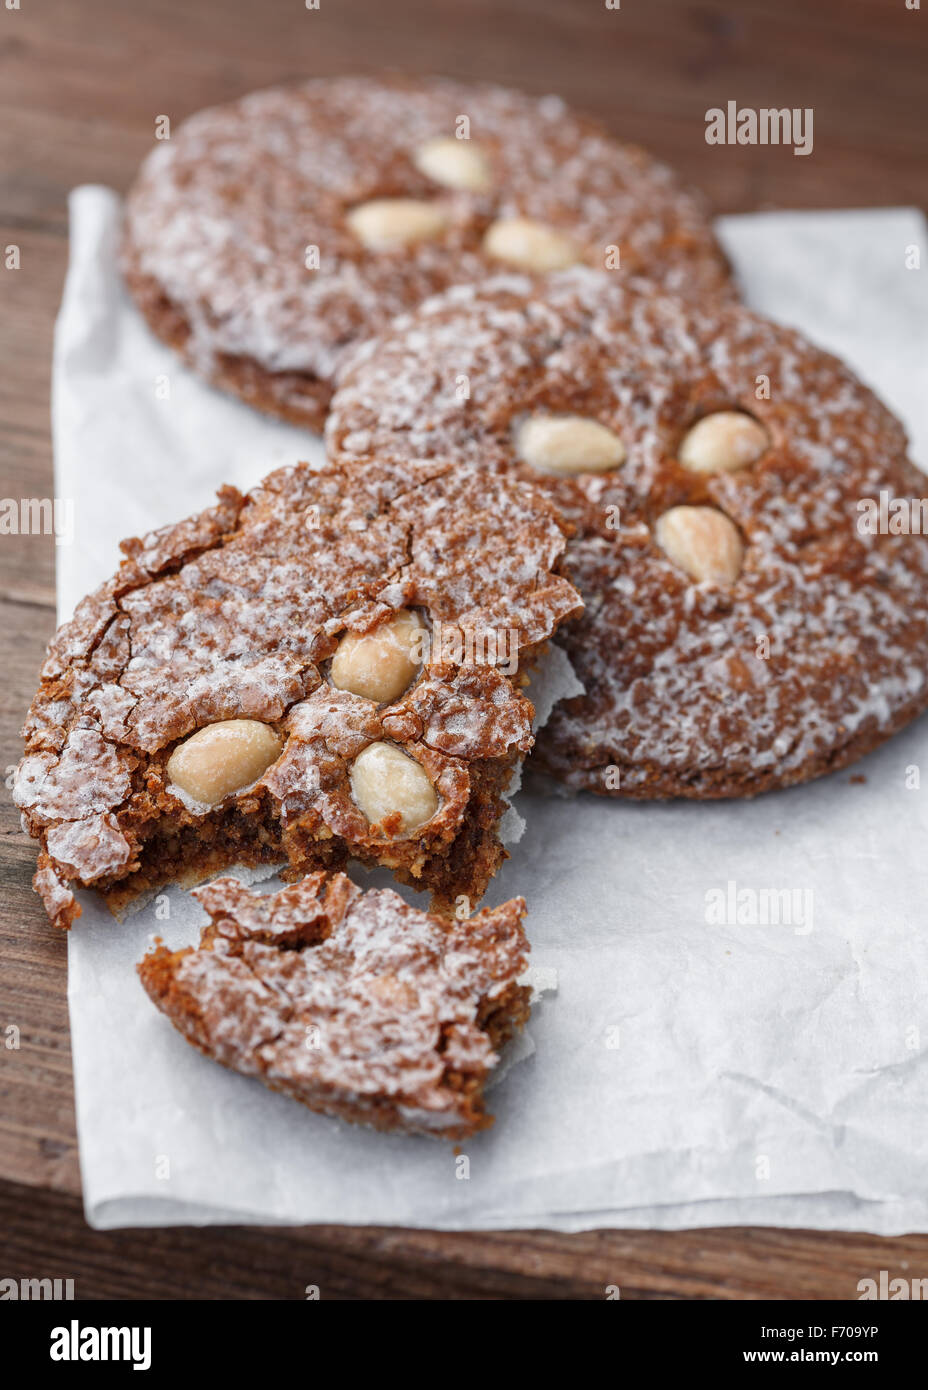 Lebkuchen, german Spice Cookies with almonds - Stock Image